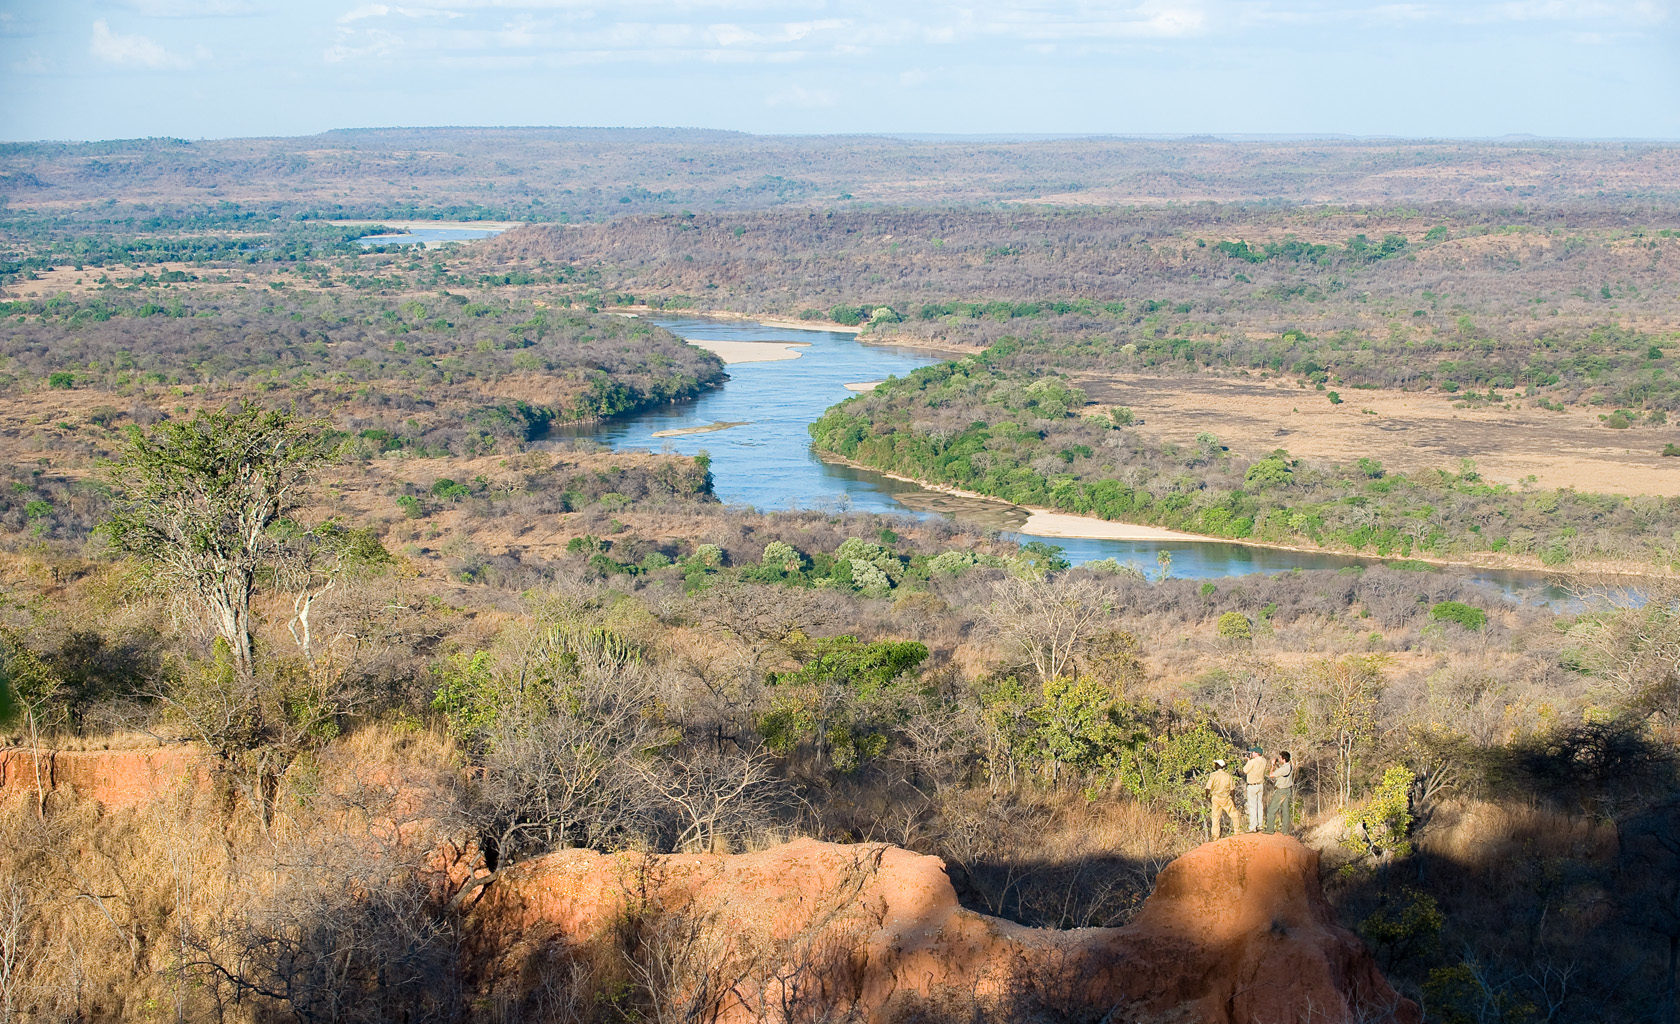 Tanzania-Selous-Game-Reserve-Landscape-Aerial